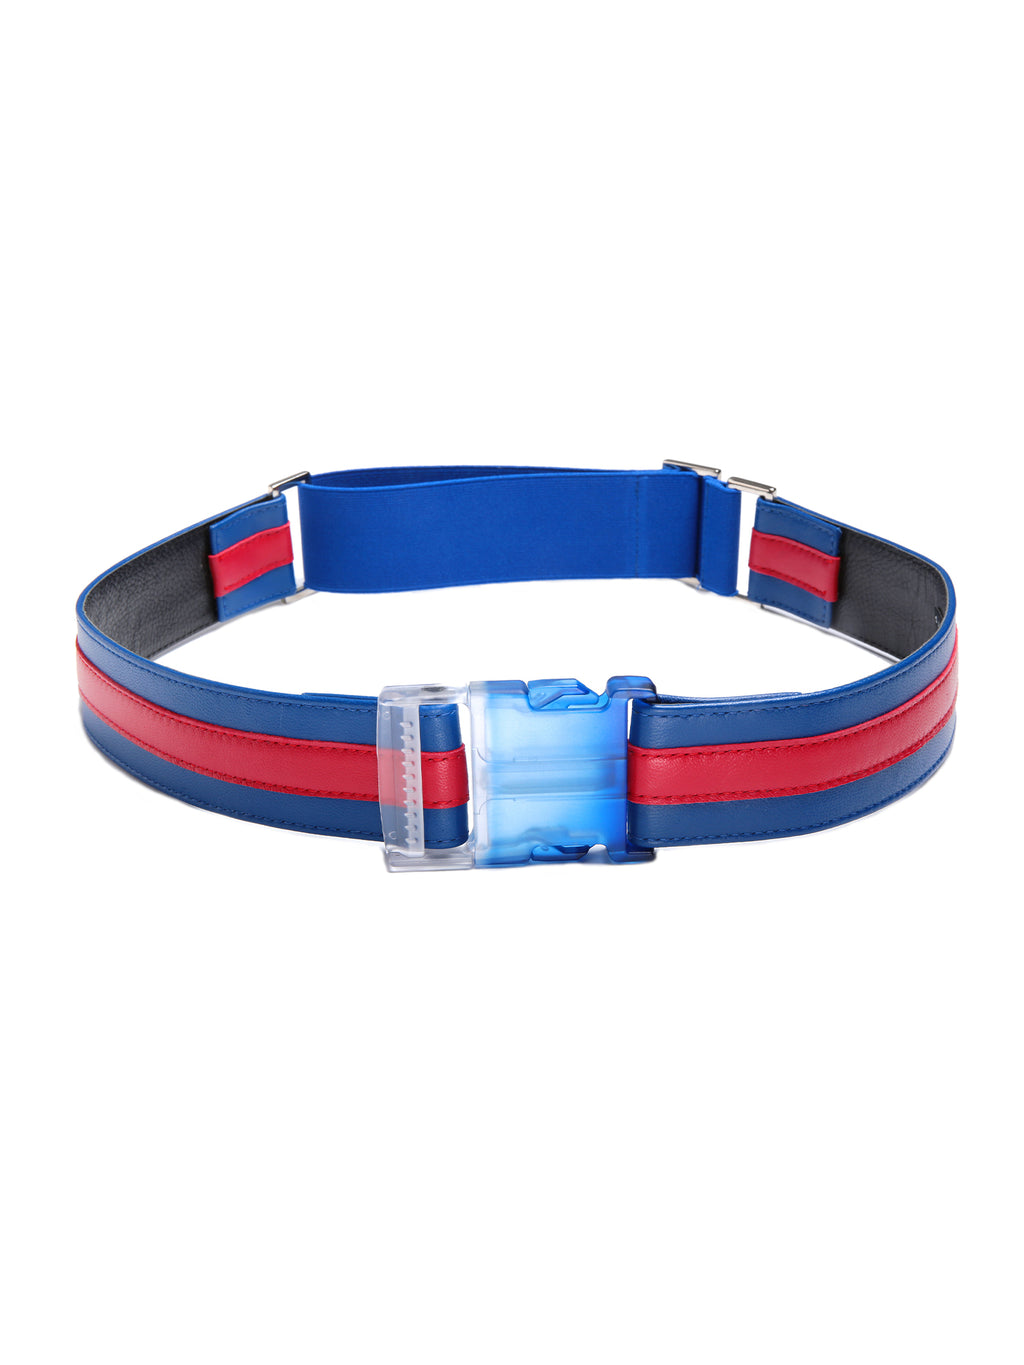 Suzi Roher Snap Buckle Leather Belt with Back Elastic in Red & Blue